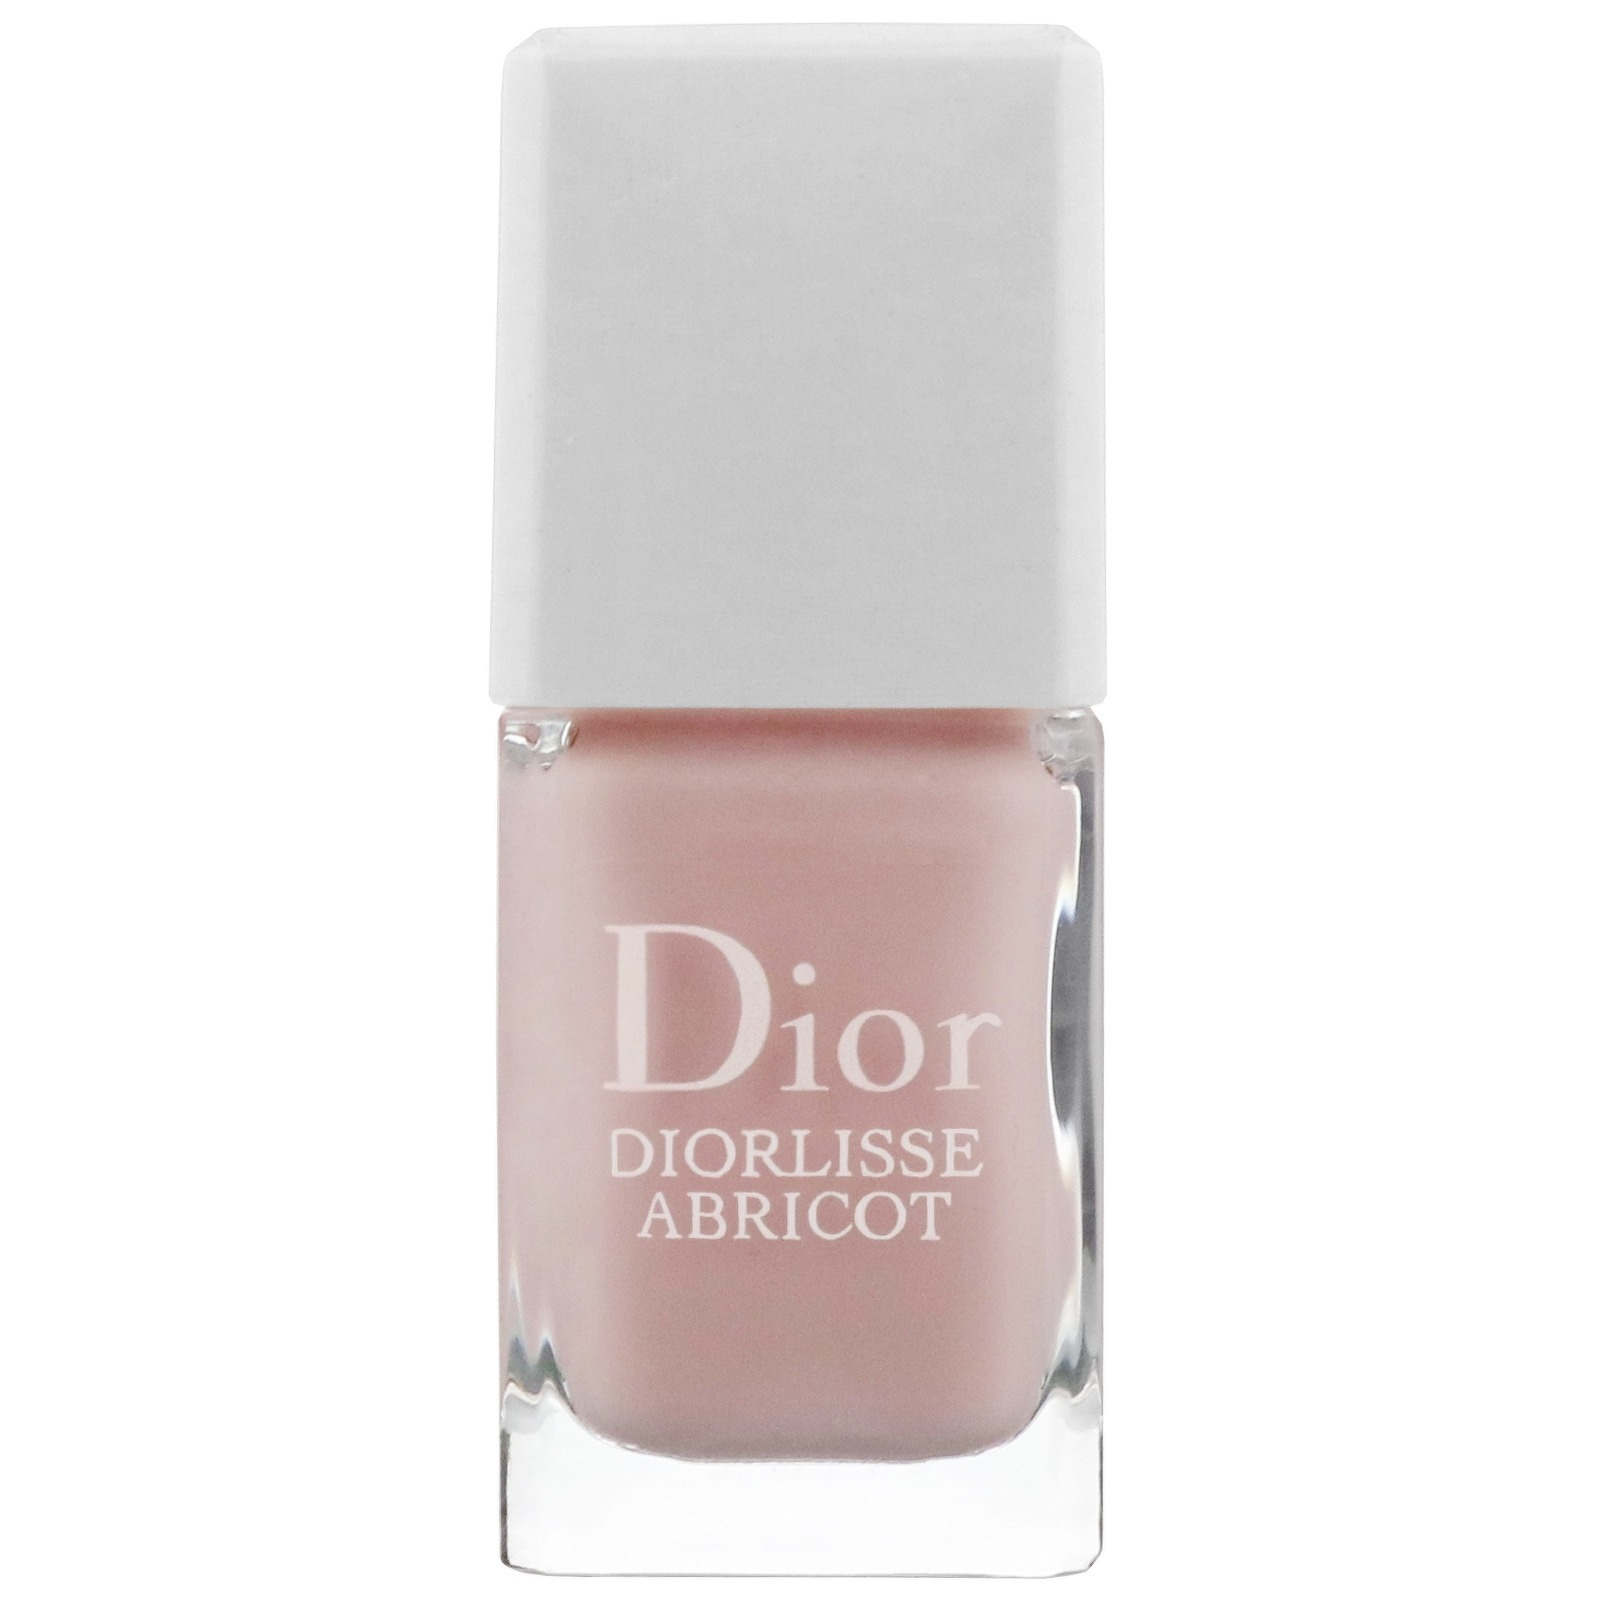 Dior Diorlisse Abricot Smoothing Perfecting Nail Care